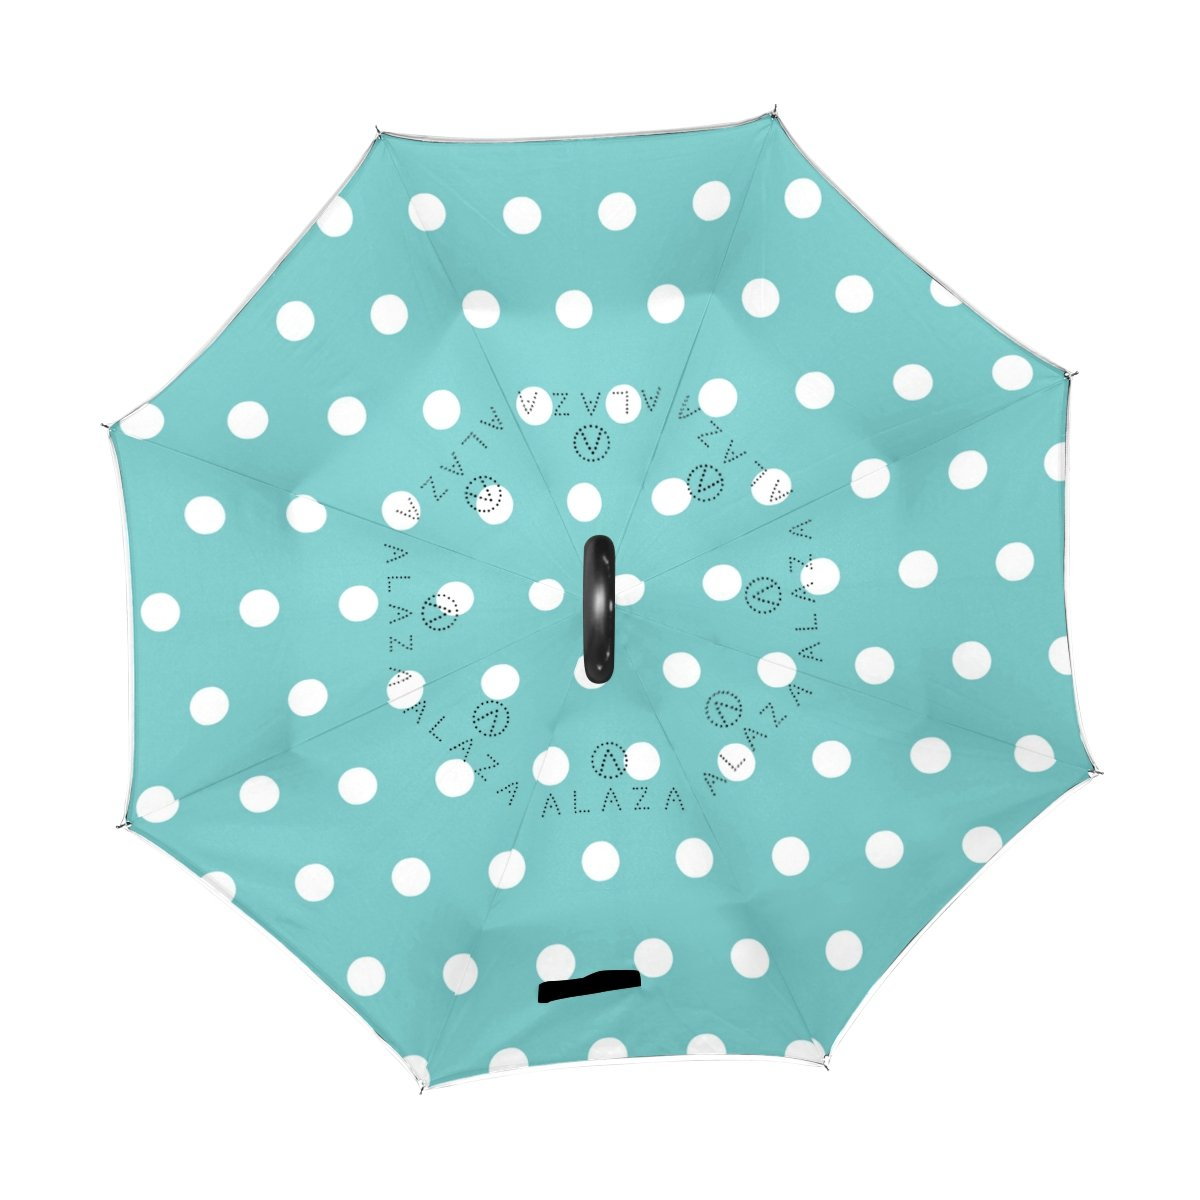 U LIFE Vintage Polka Dots Reverse Inverted Sun Rain Umbrellas for Car Outdoor Use With C-shaped Handle   B078YQX1X9